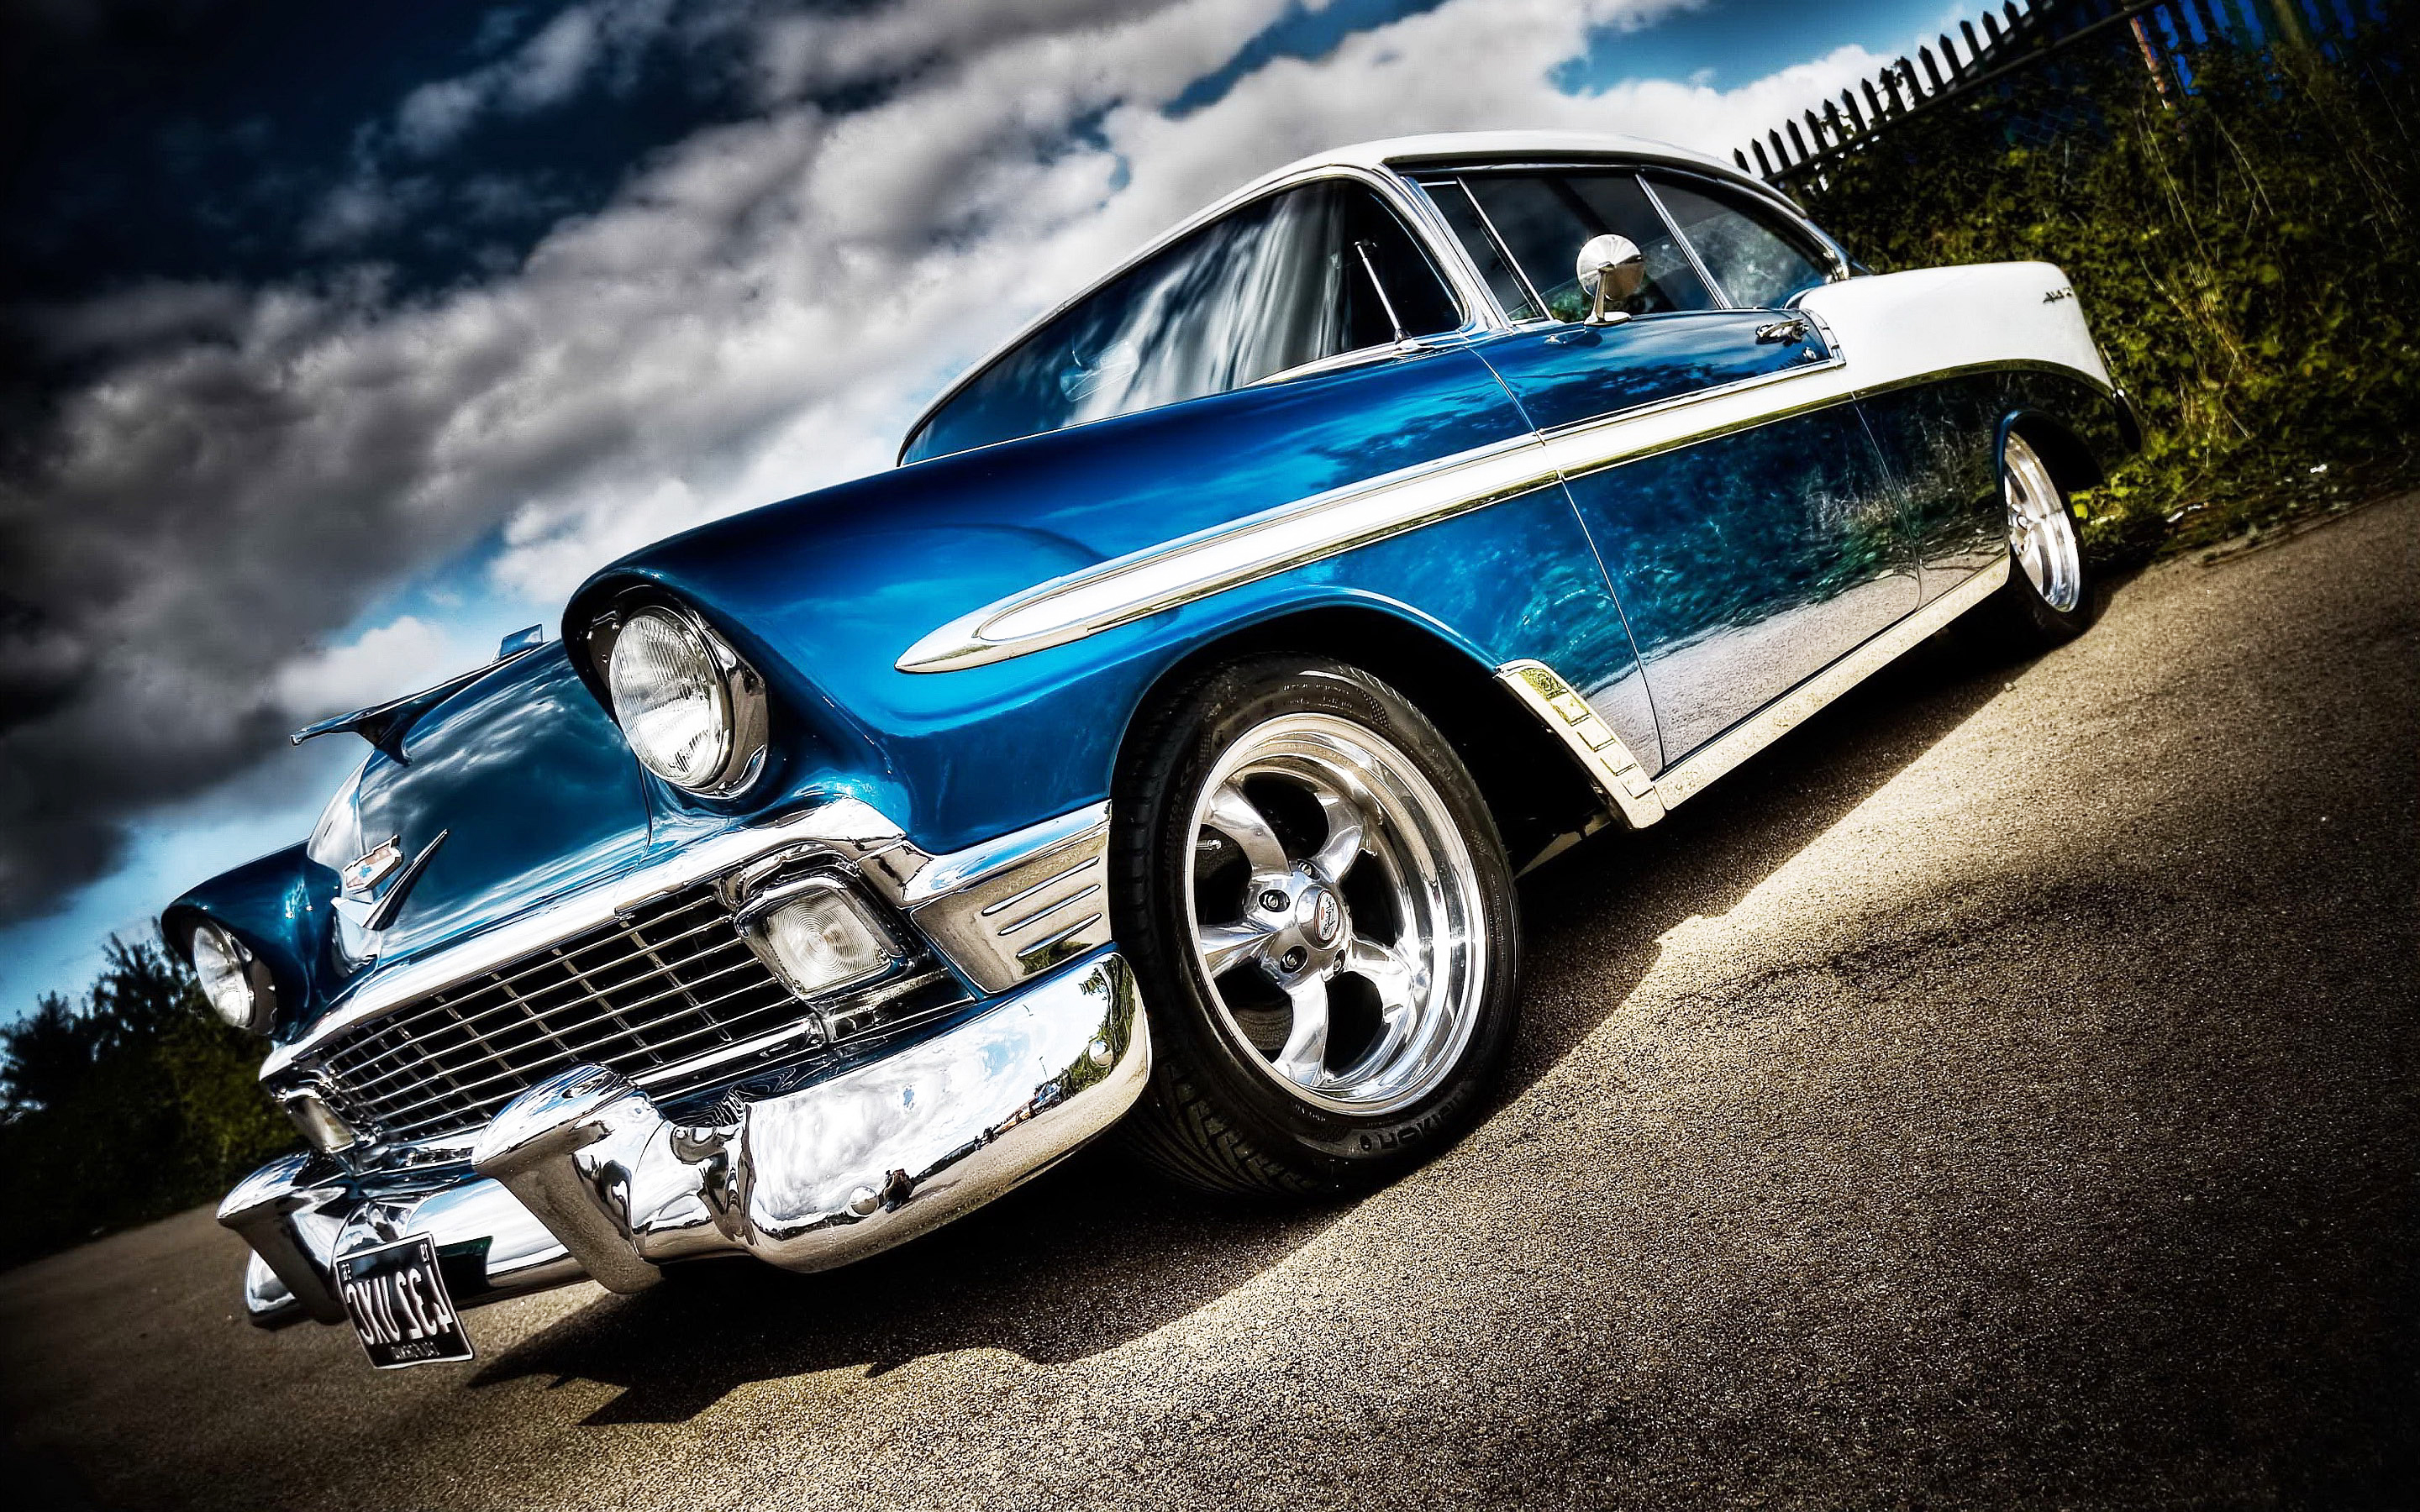 Old-Car-Wallpapers-Hd-Hd-Wallpapers